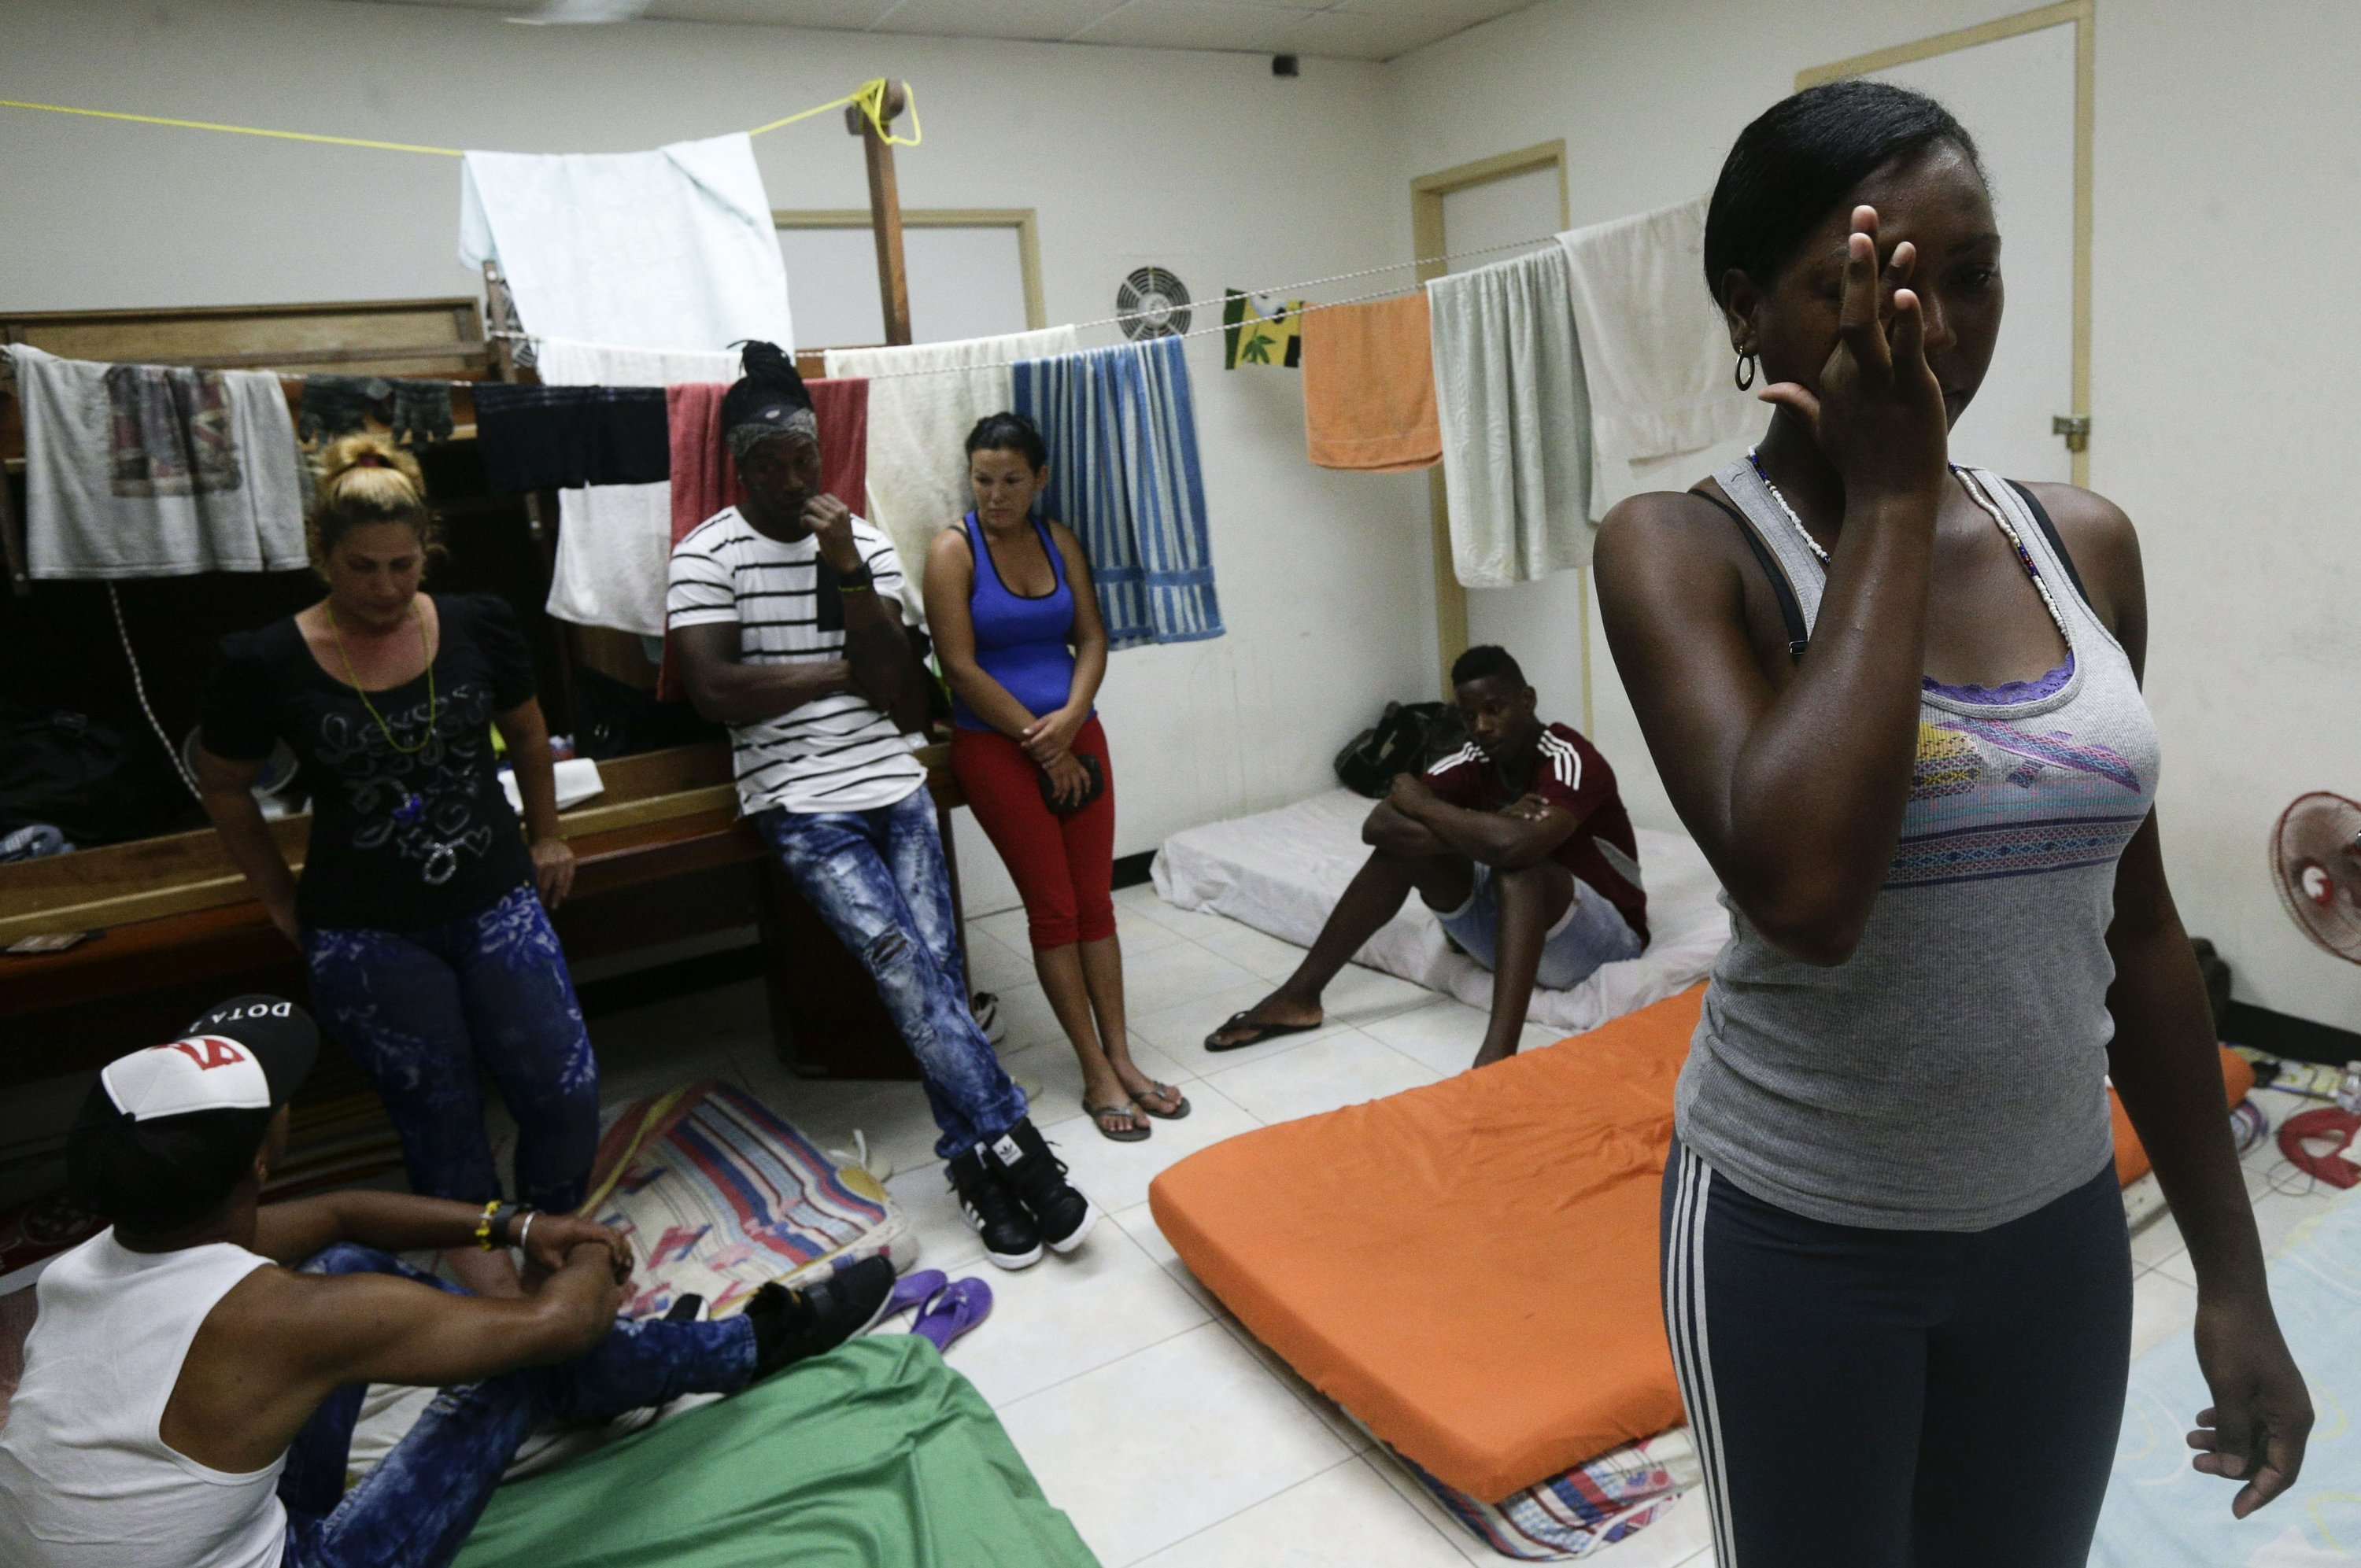 US policy change on Cuban migrants leaves many stranded